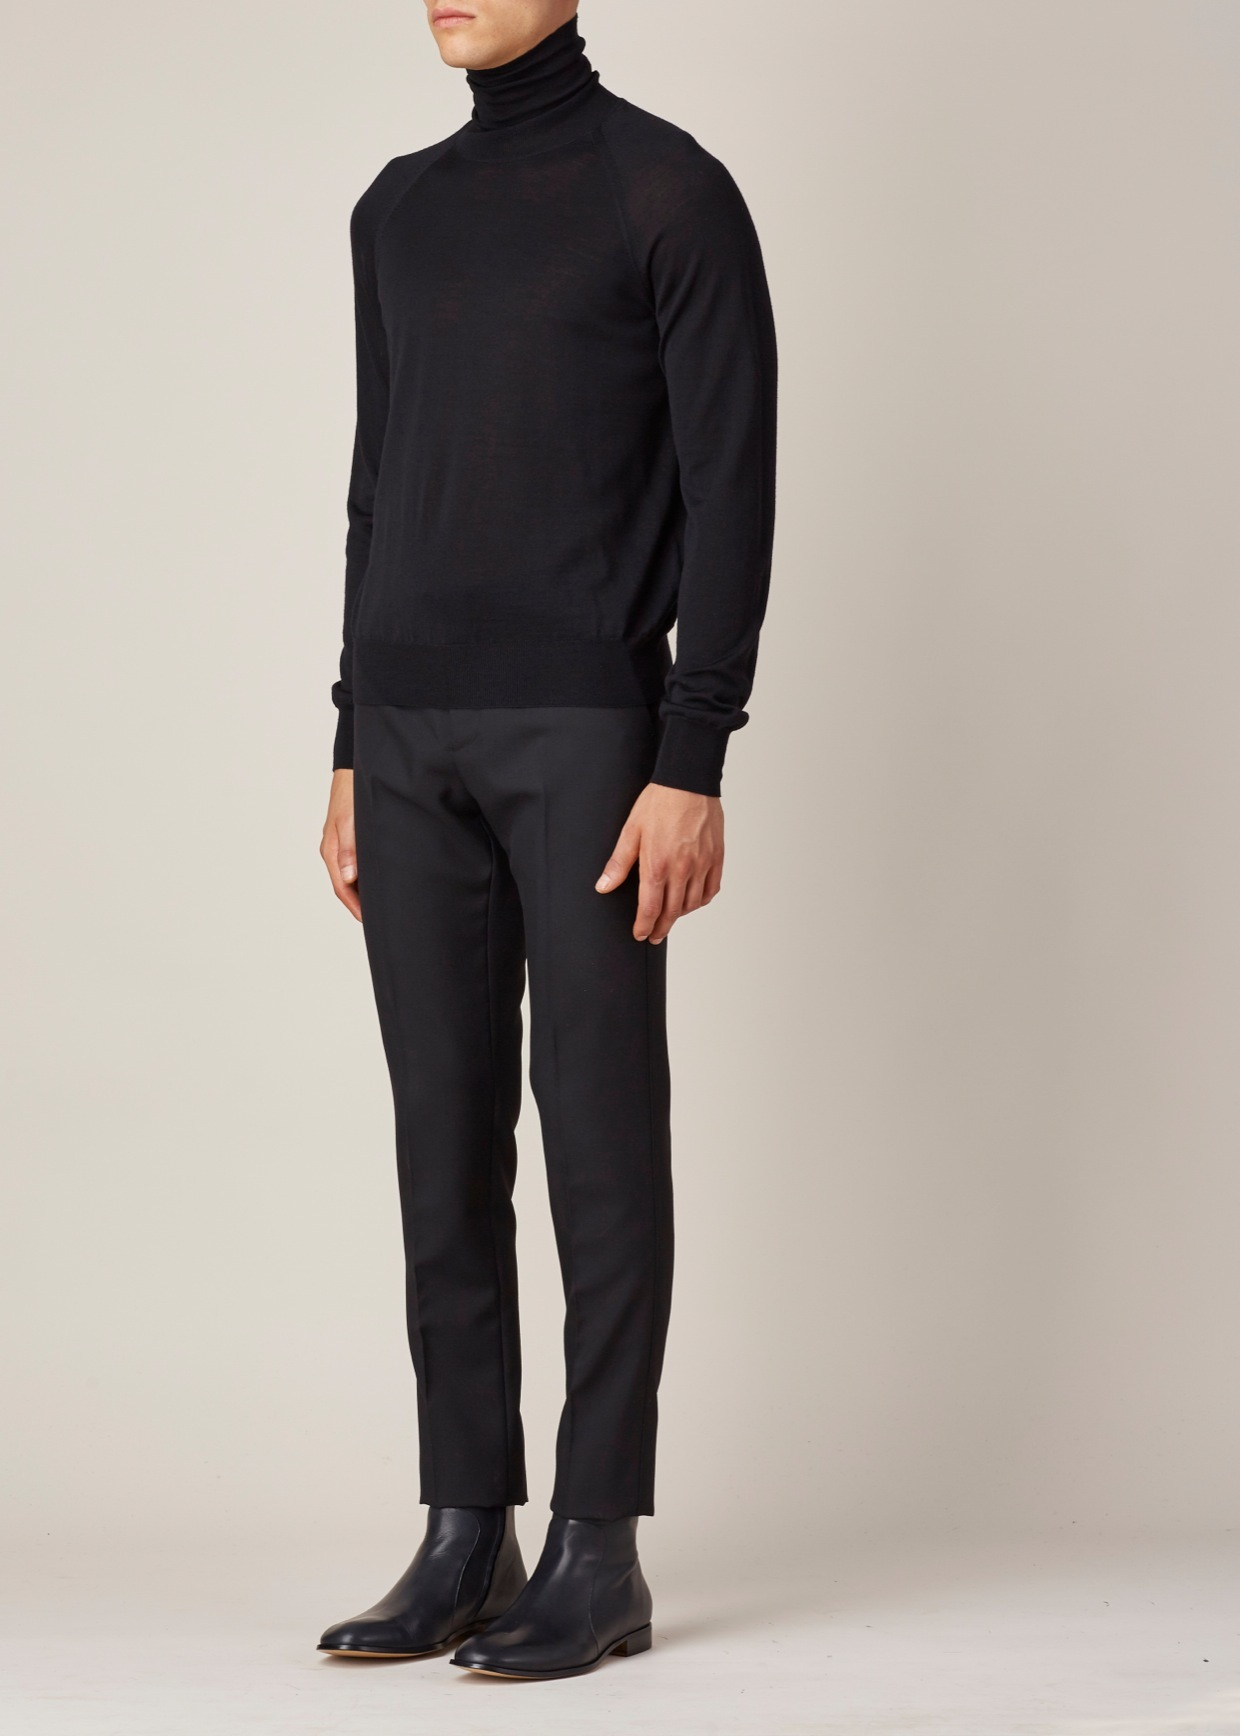 lyst jil sander black turtleneck in black for men. Black Bedroom Furniture Sets. Home Design Ideas